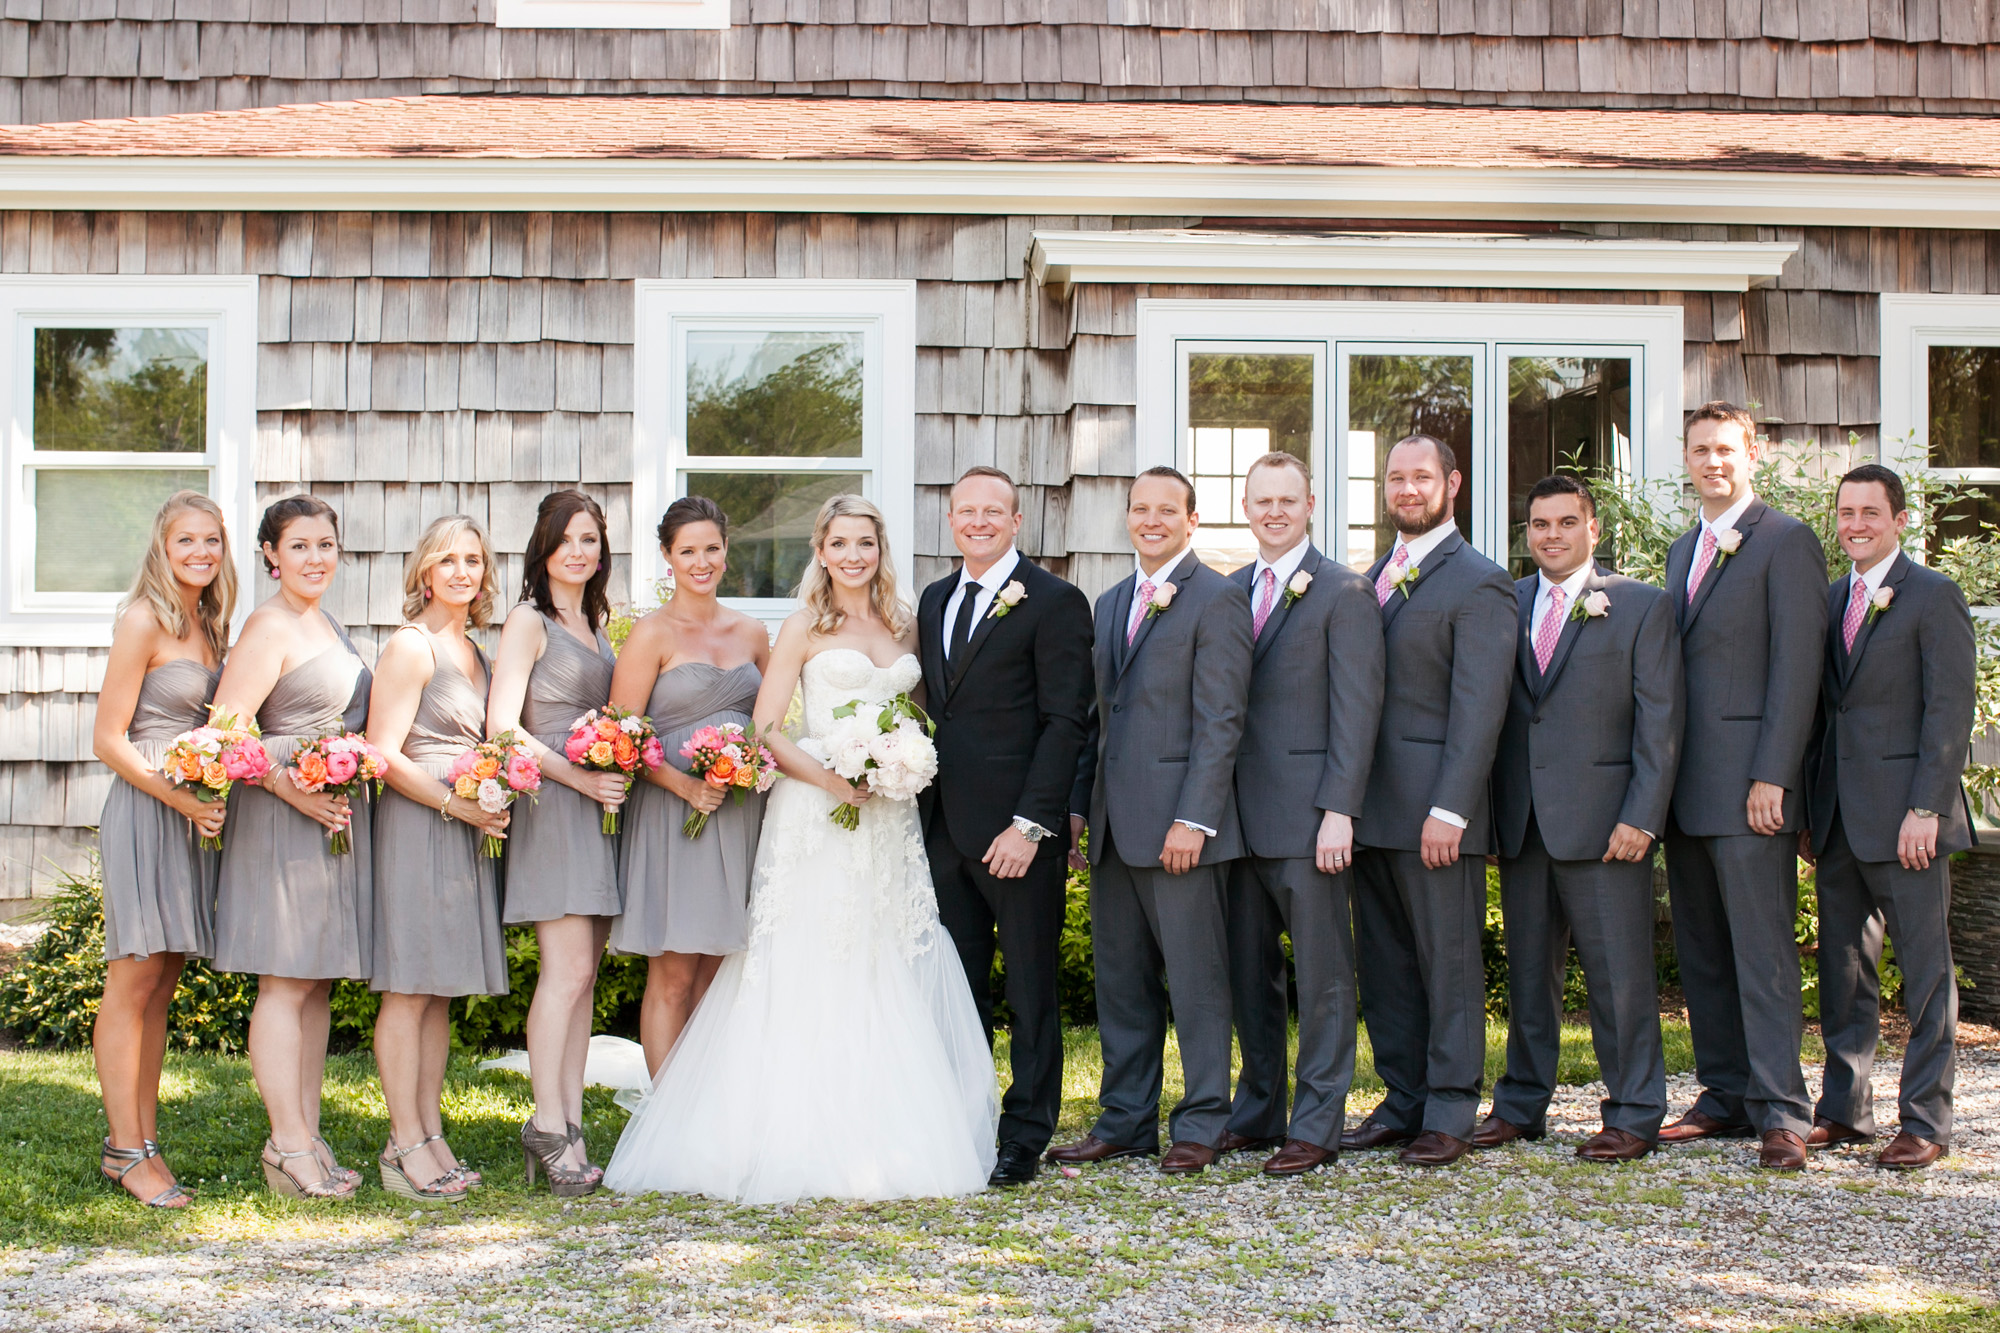 16Katy_Eddie_Talcott_House_Wedding_Westbrook_CT_Tanya_Salazar_Photography.jpg